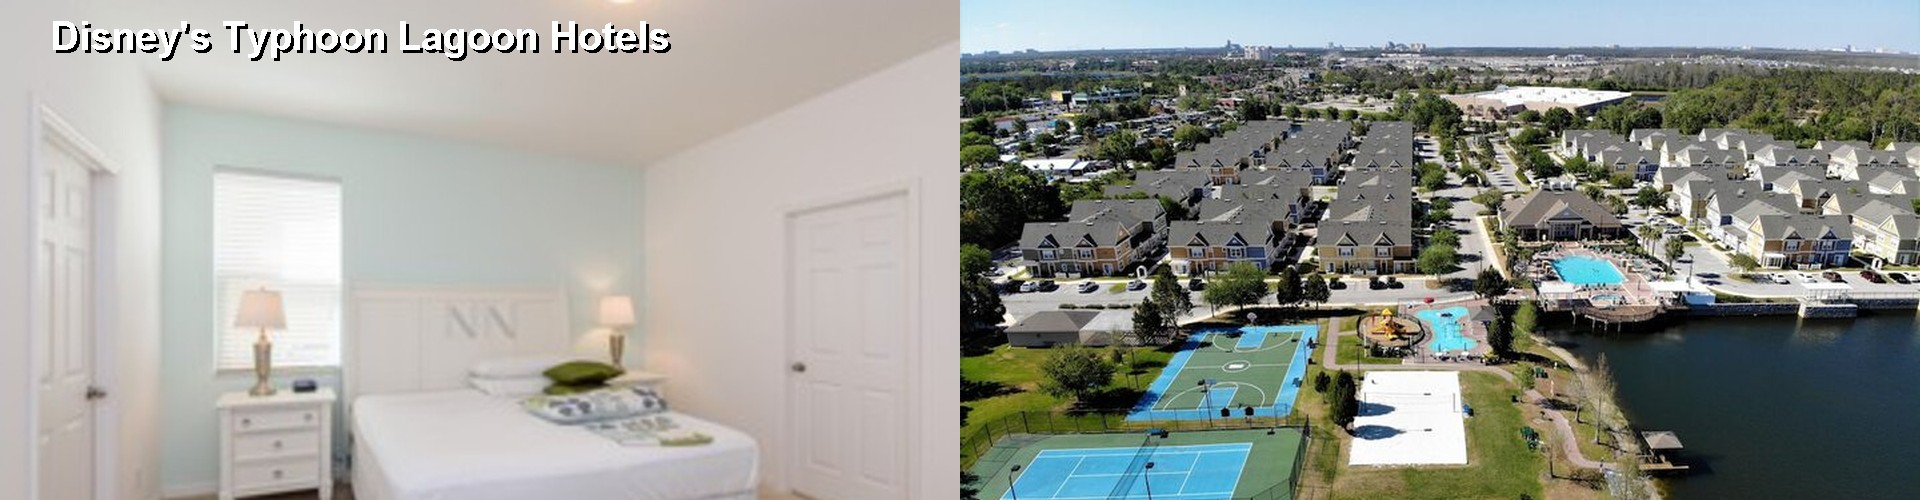 5 Best Hotels near Disney's Typhoon Lagoon